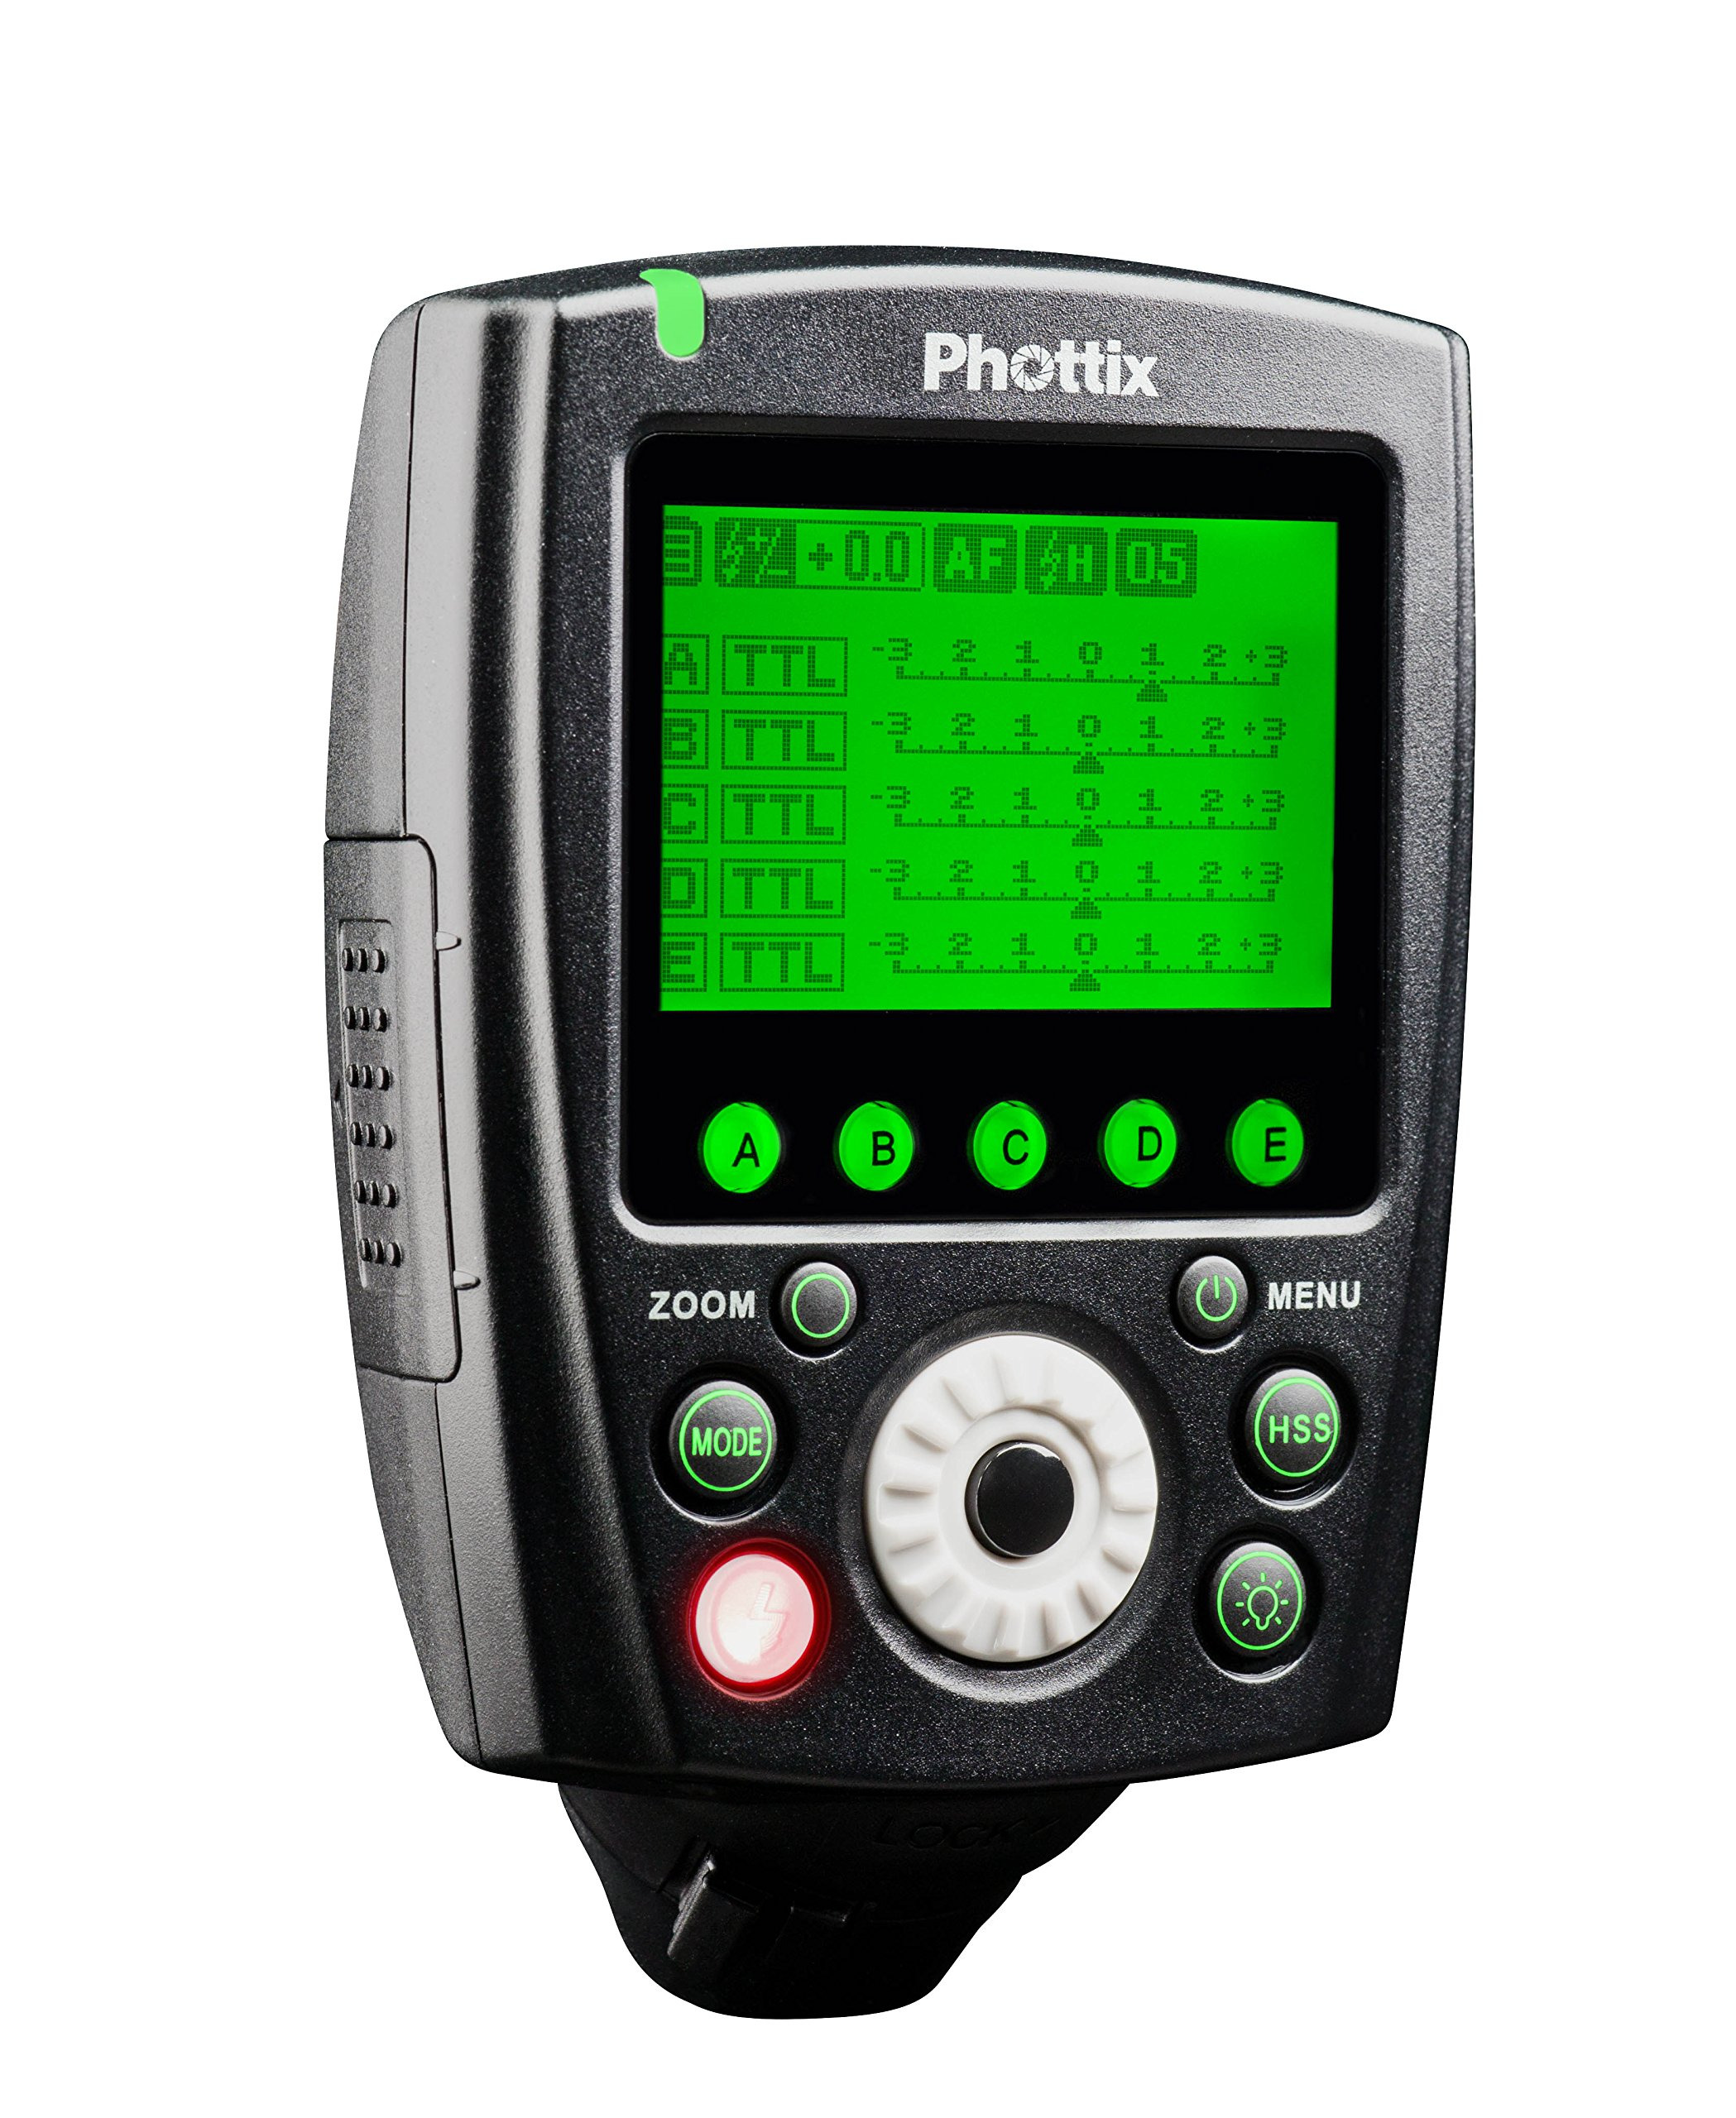 Phottix Odin II TTL Wireless Flash Trigger for Canon - Transmitter Only (PH89074)